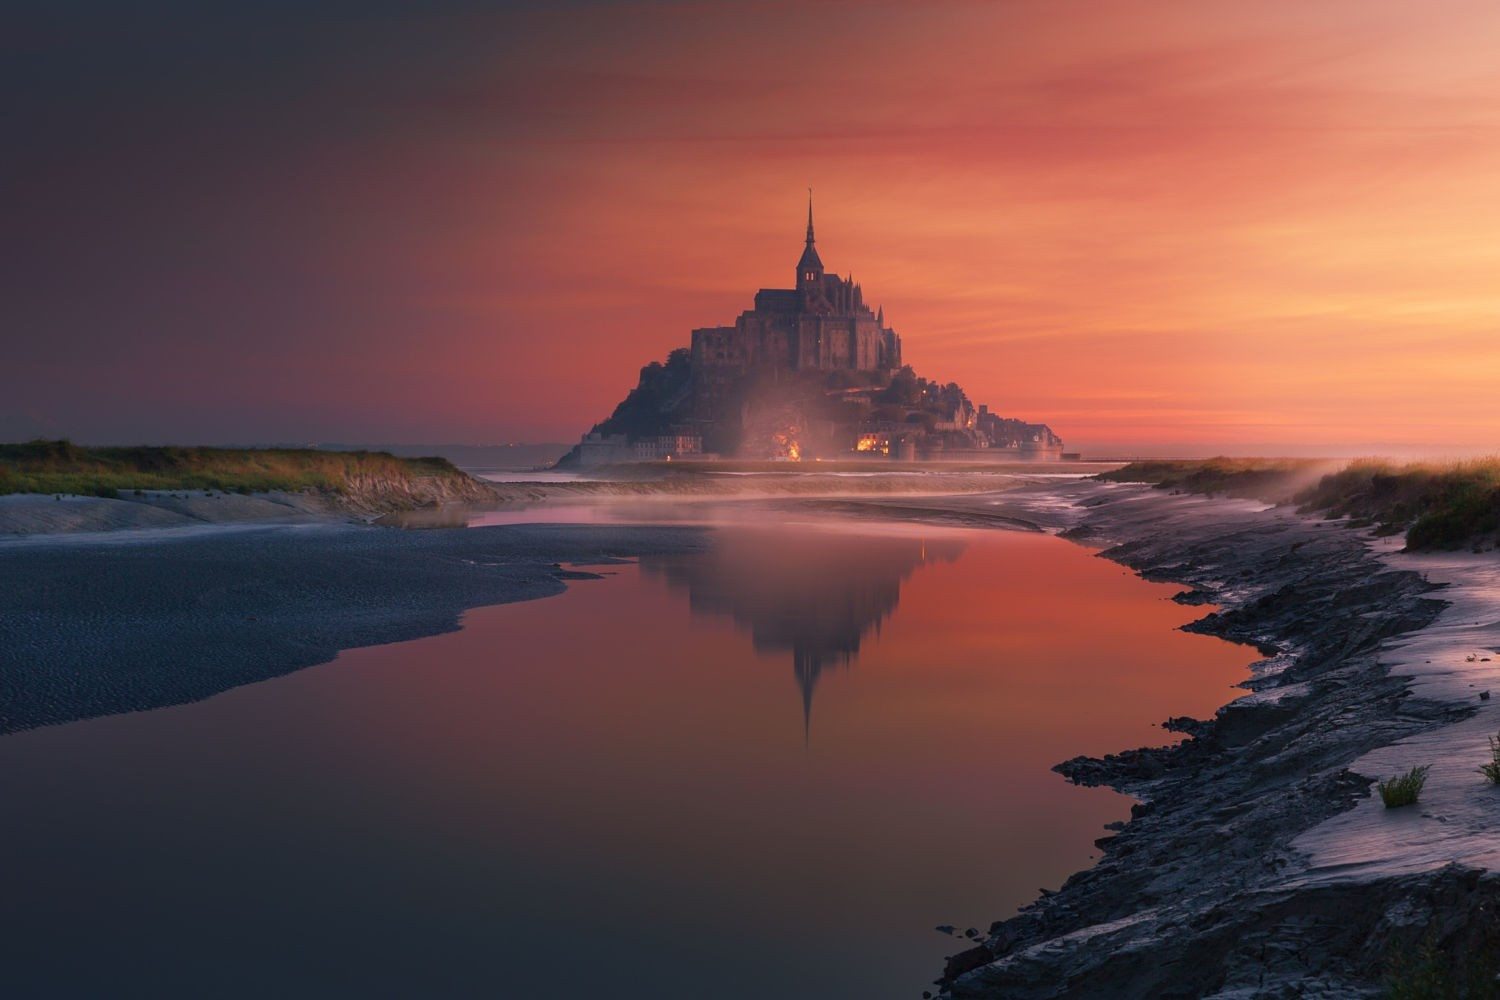 General 1500x1000 nature photography landscape sunset Mont Saint-Michel France reflection Abbey island World Heritage Site monastery sky